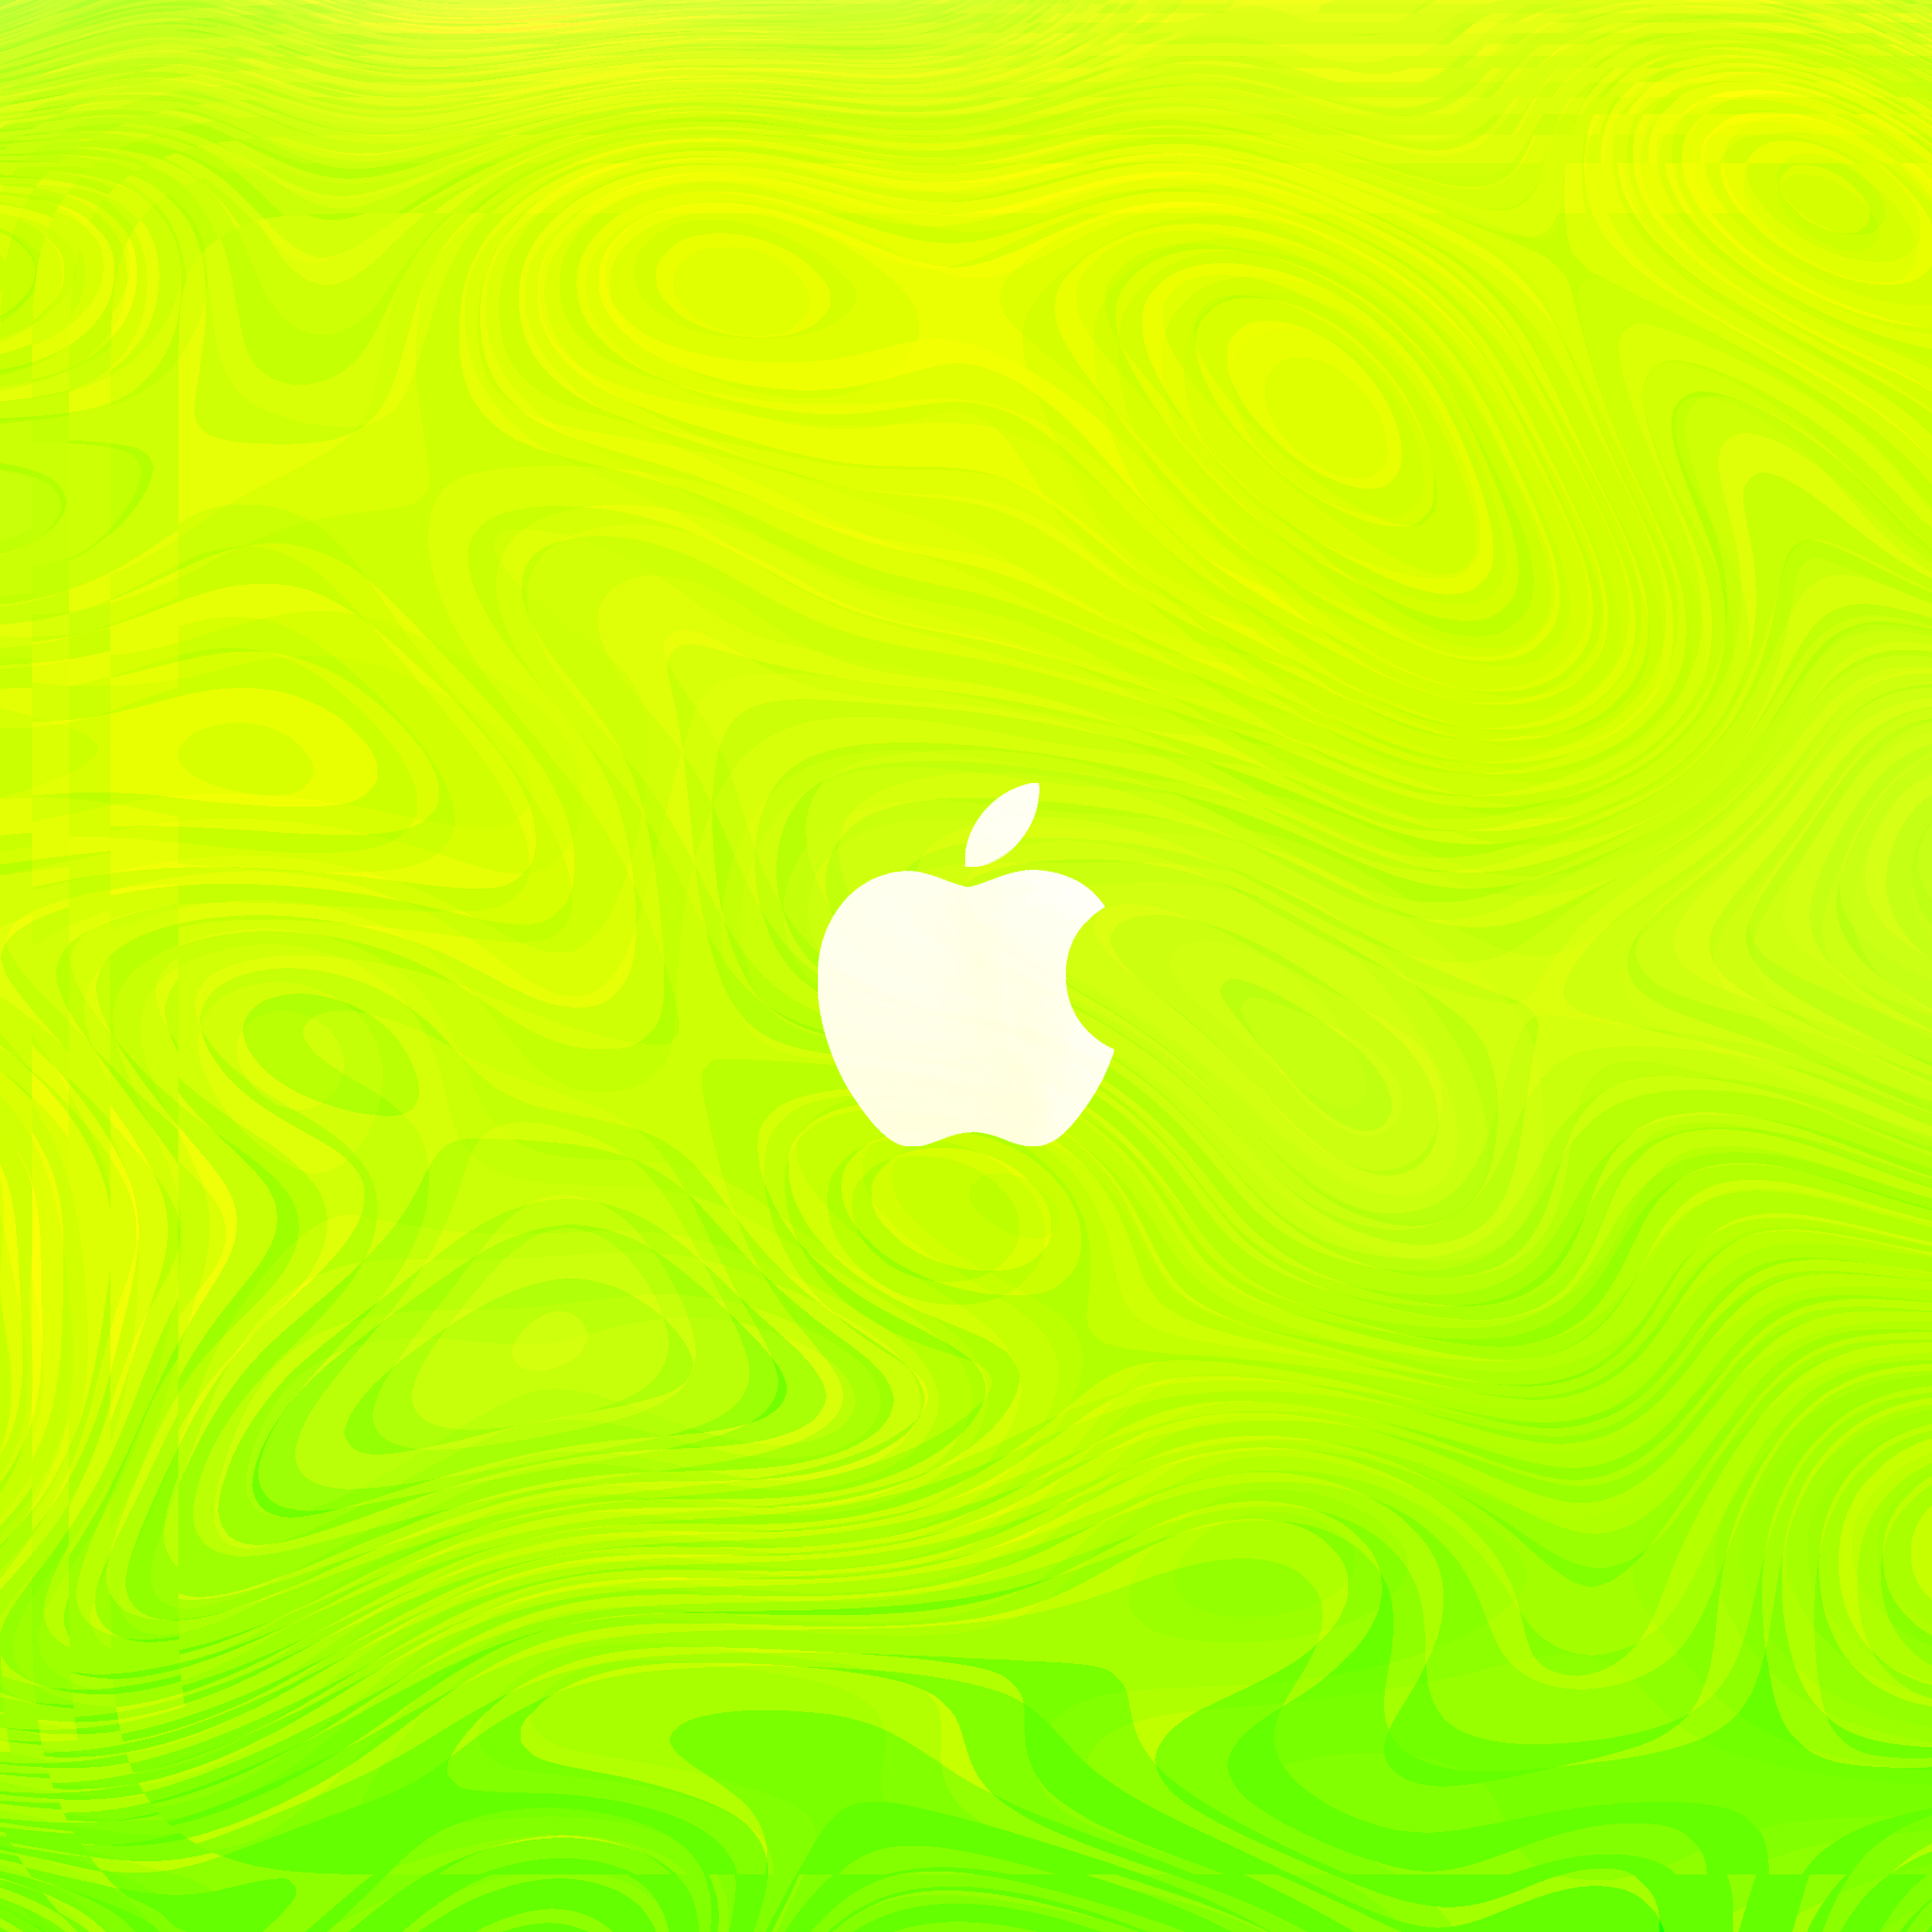 gallery apple filename ipad retina wallpaper apple logo hd 52 jpg 2048x2048